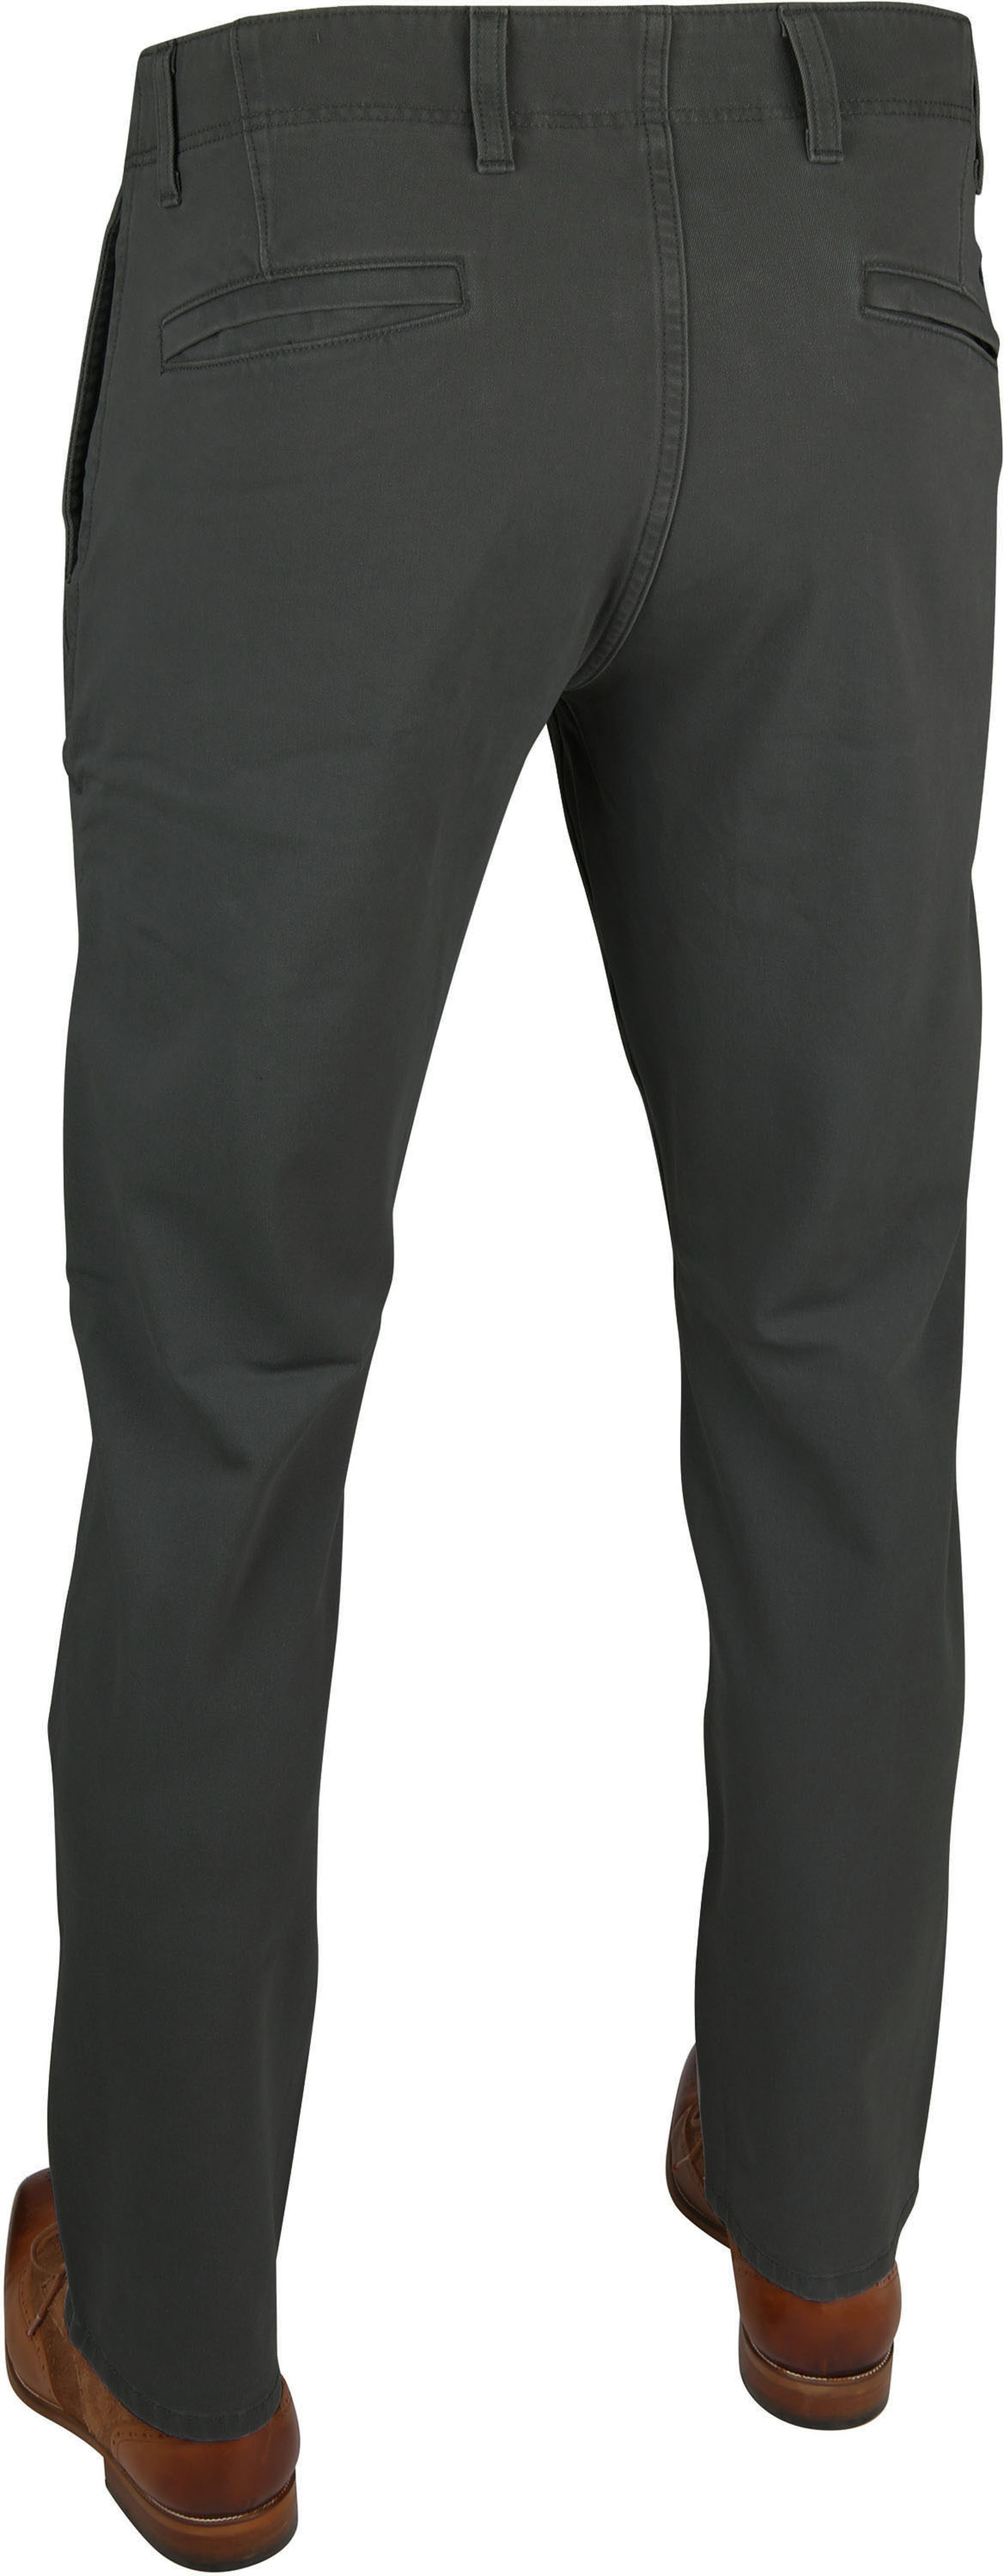 Dockers Alpha Skinny Chino 360 Flex Dark Grey foto 3